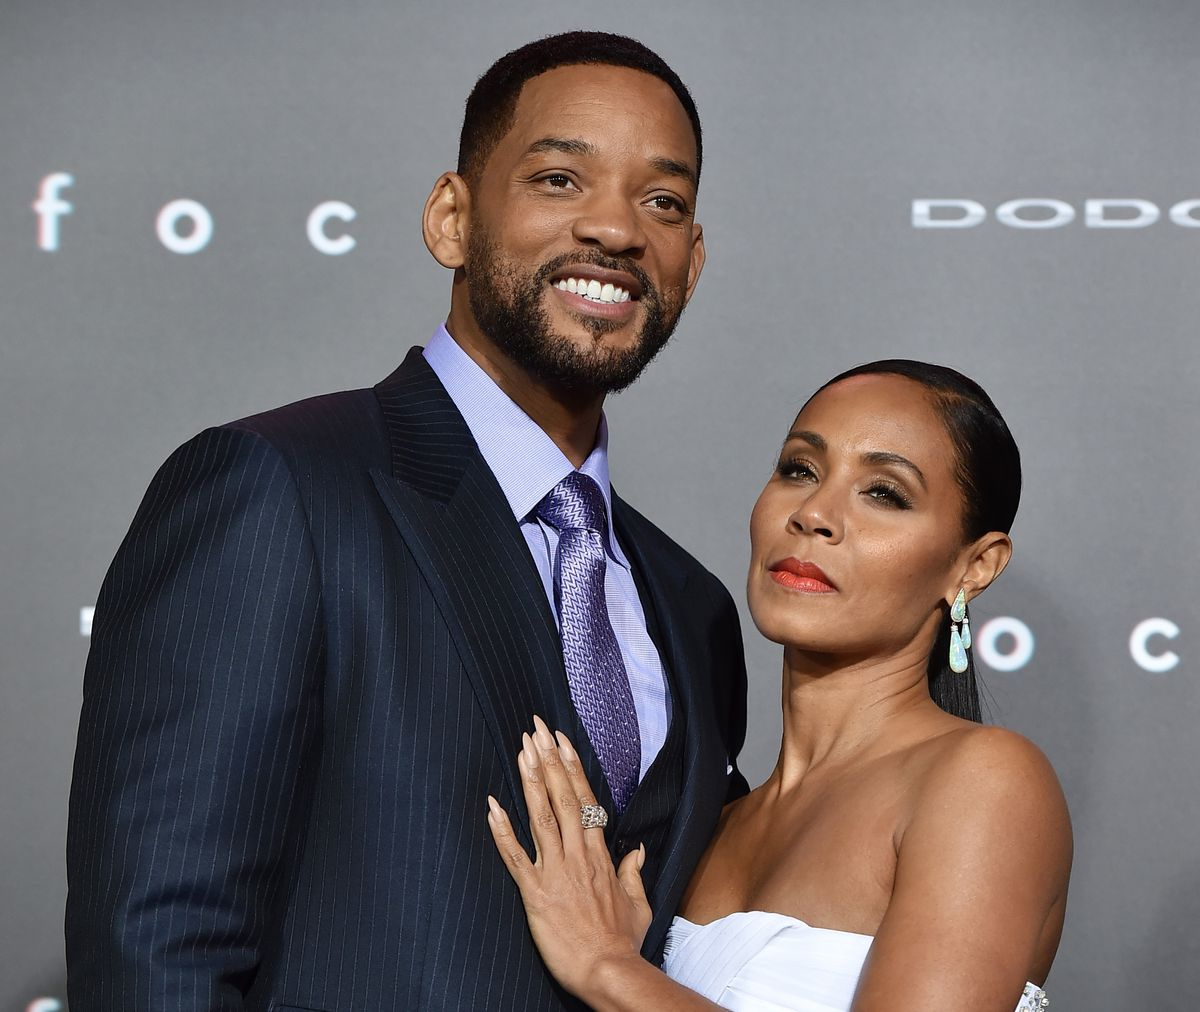 Will and Jada Pinkett-Smith at the 'Focus' premiere